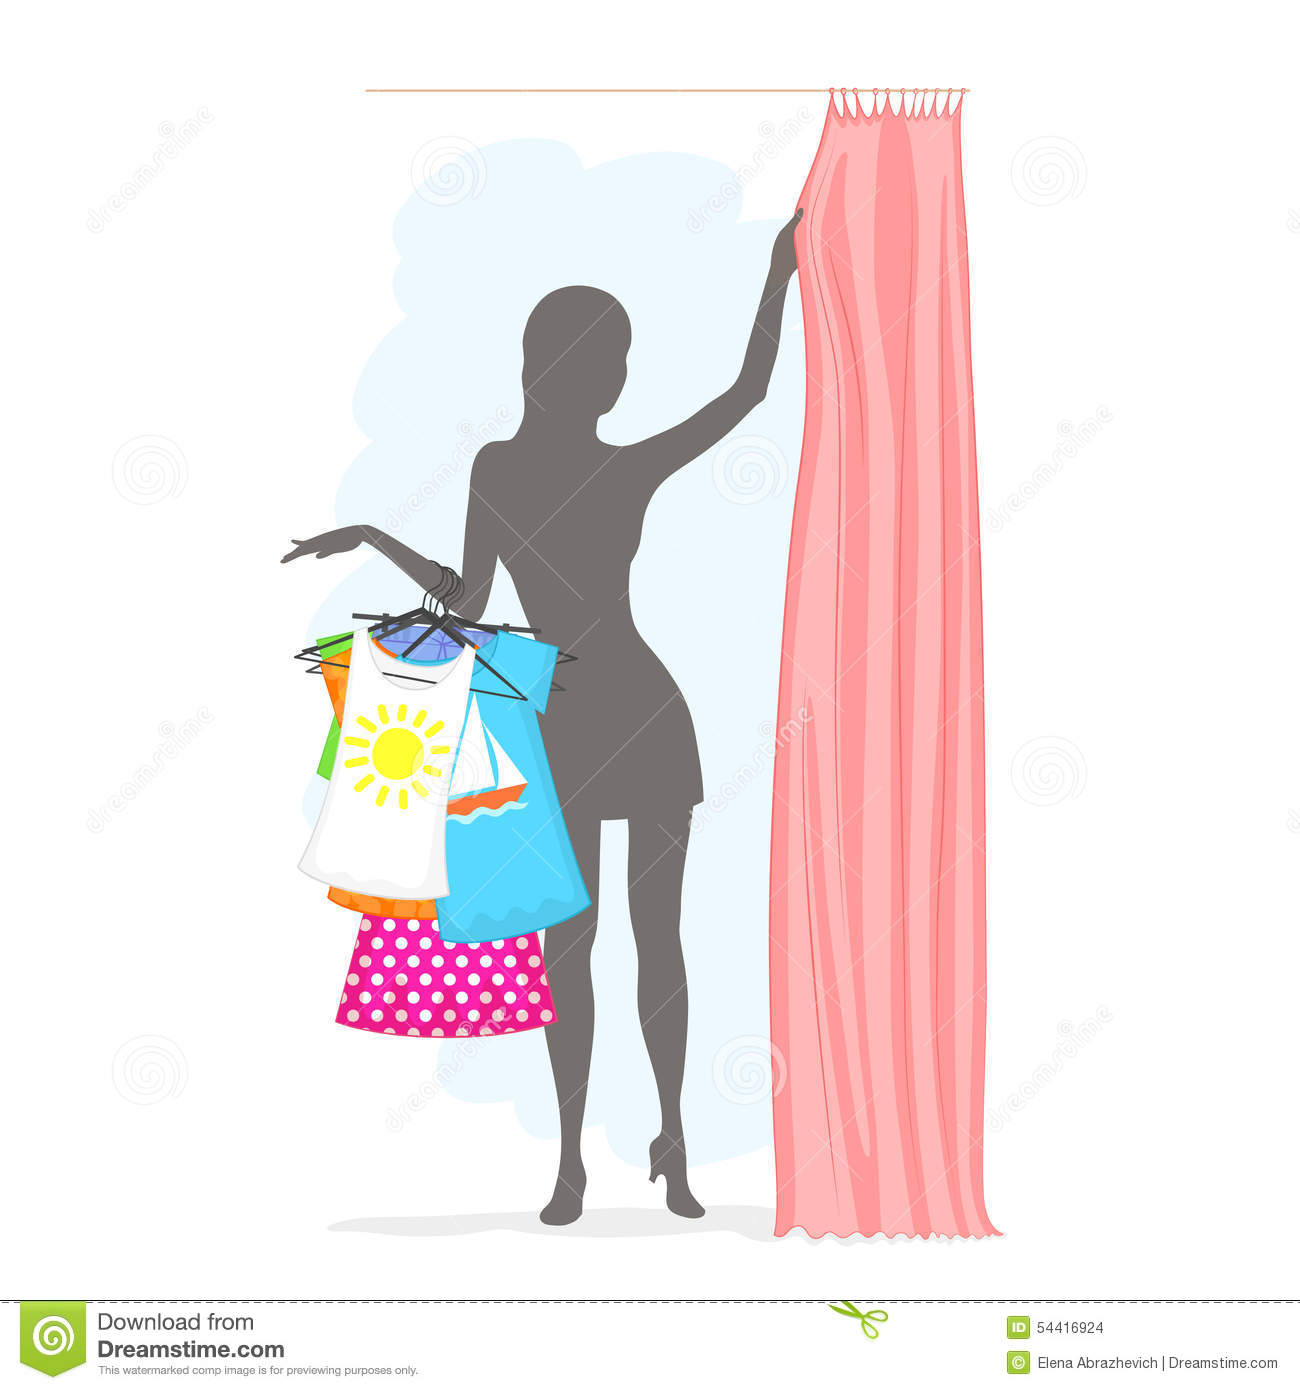 Woman In Fitting Room Slender Is Holding Many Clothes On Hangers And Pulling The